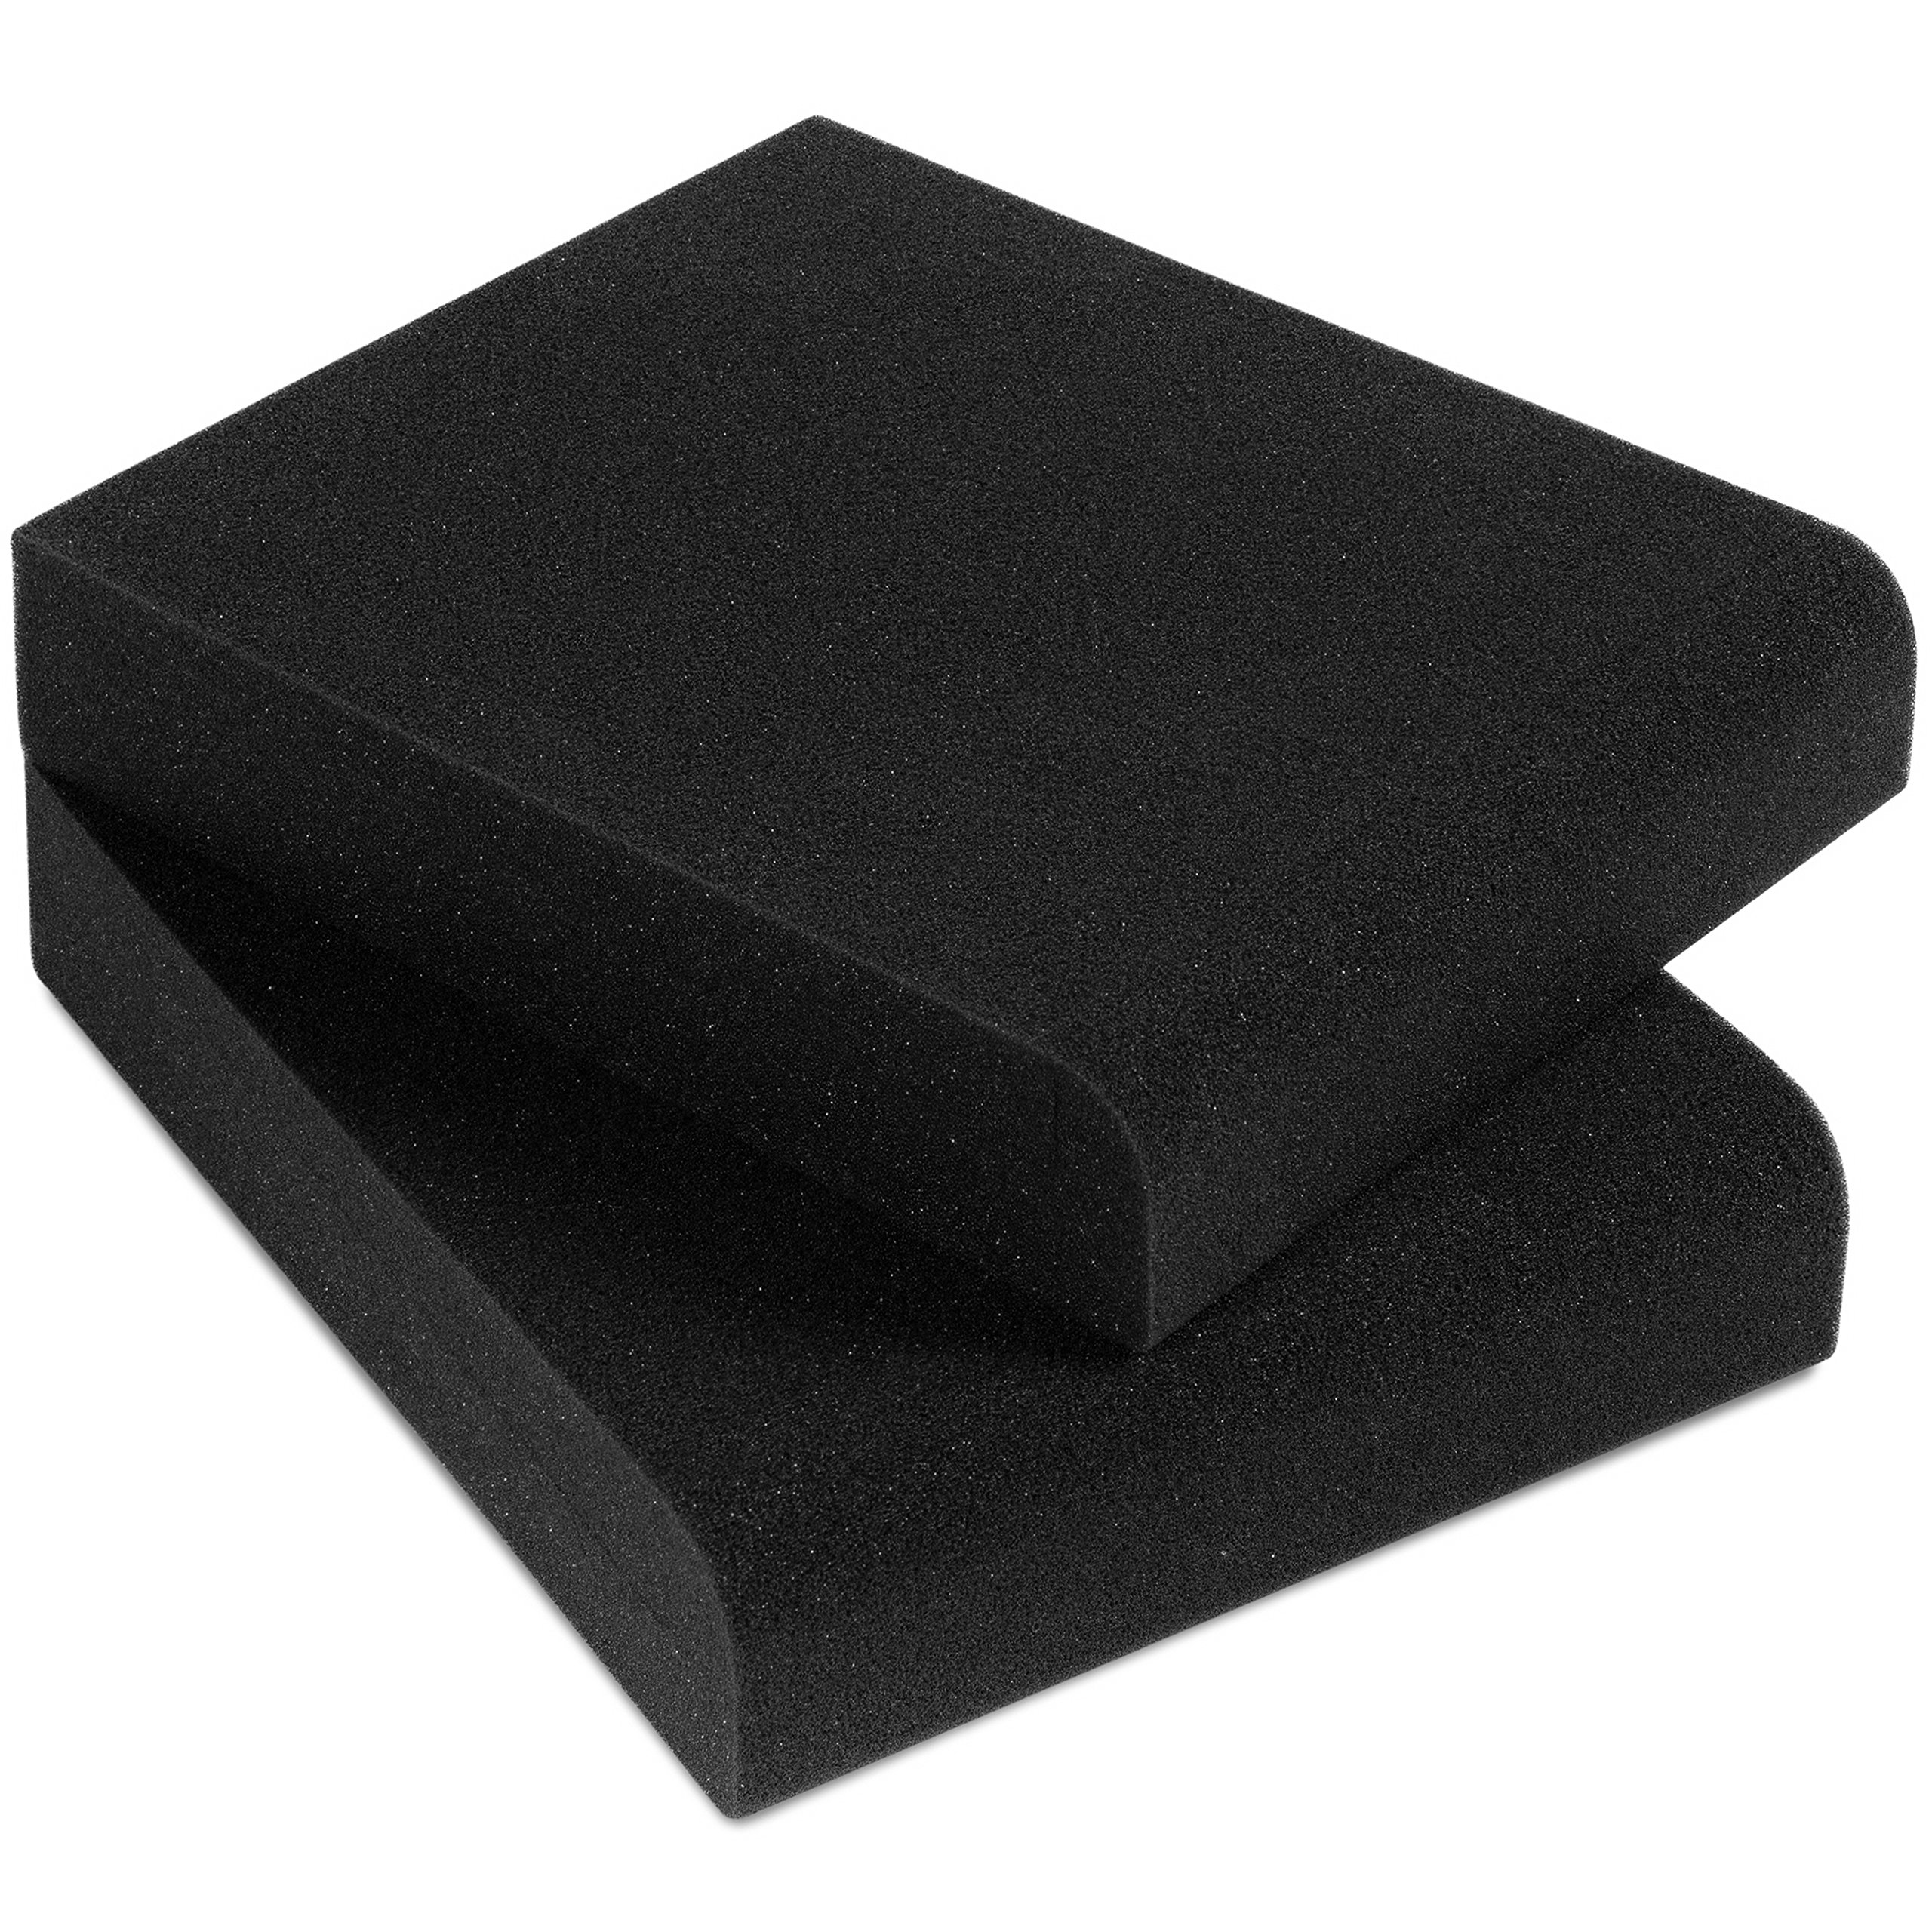 Sound Addicted - Studio Monitor Isolation Pads for 3'' - 4.5'' Inch Small Speakers, Pair of Two High Density Acoustic Stands Foam Which Fits most Bookshelf's and Desktops | SMPad 4 by Sound Addicted